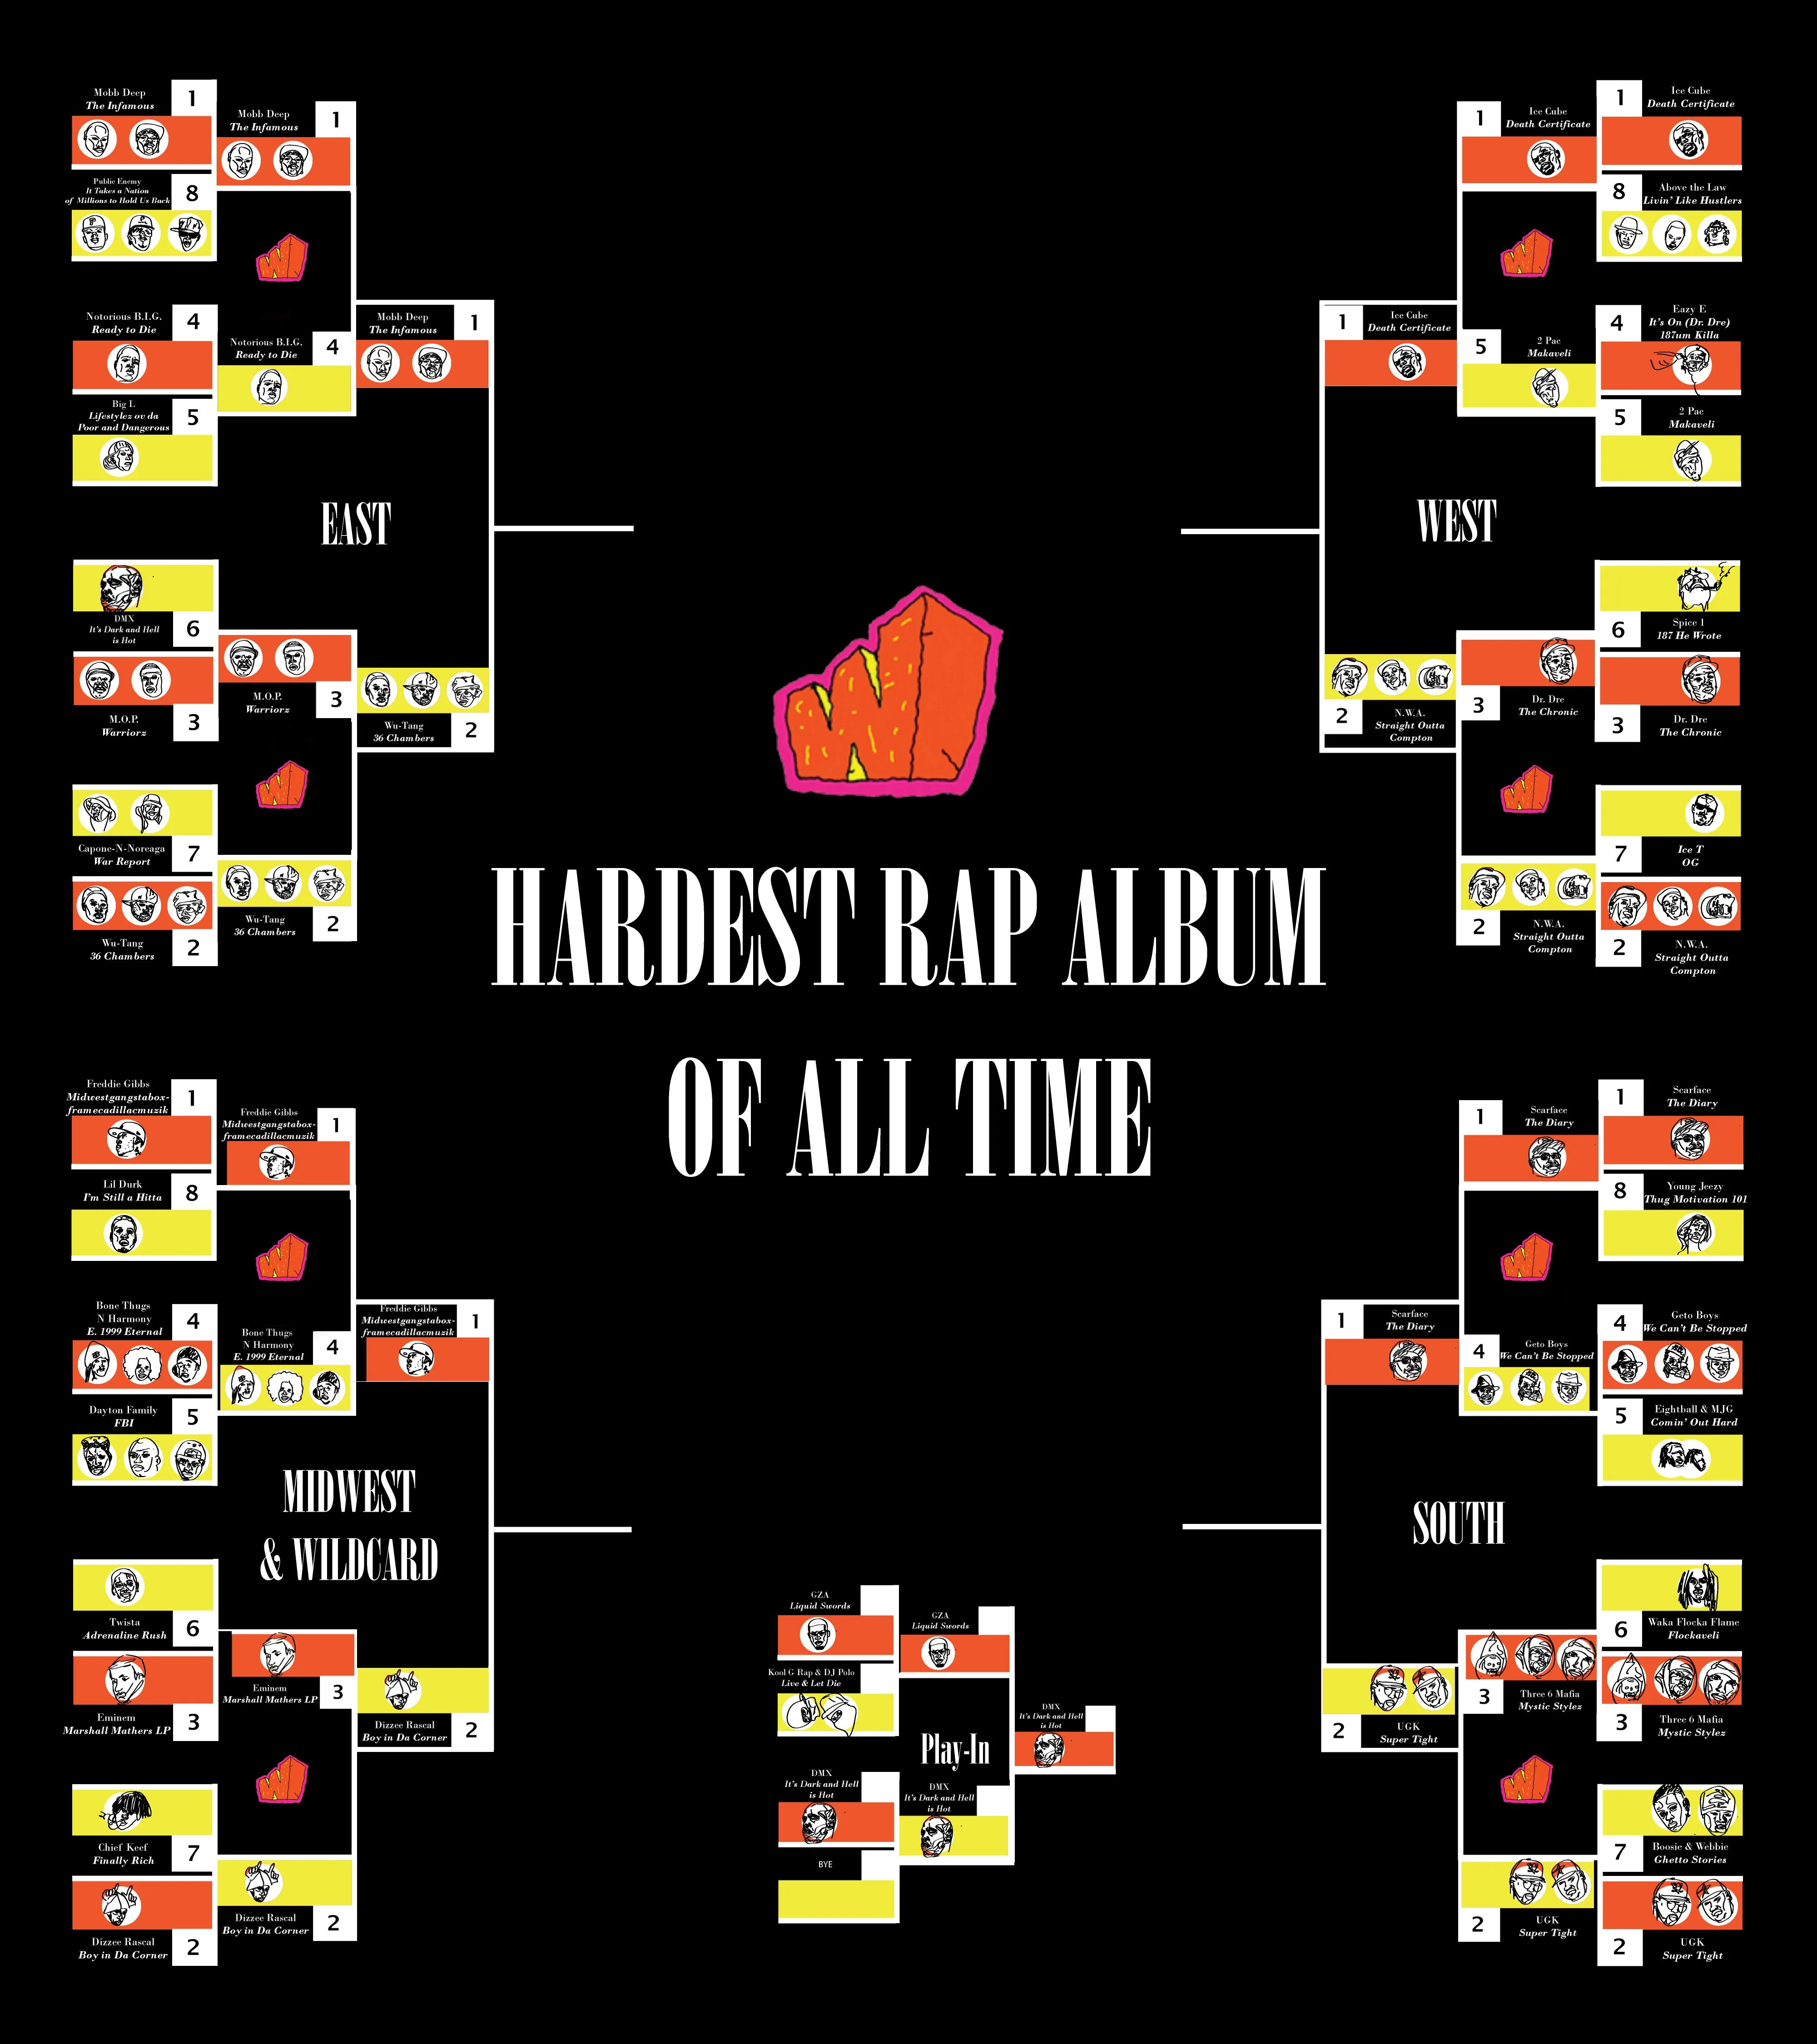 hardest_rap_bracket_3_ELITE8